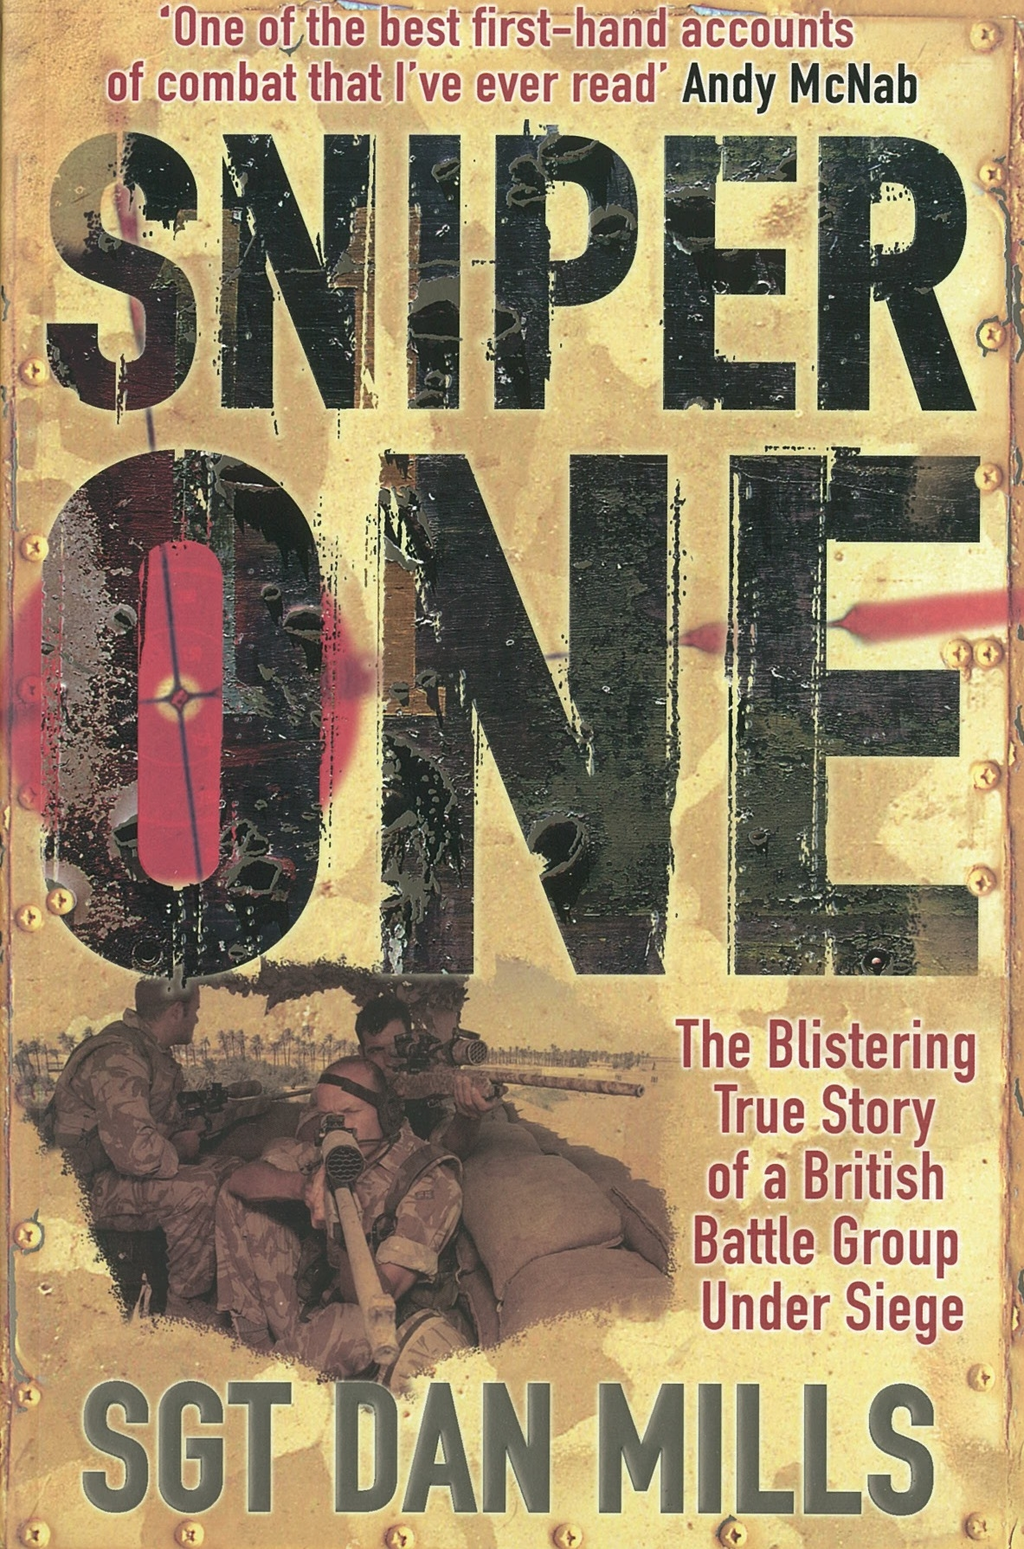 Sniper One: The Blistering True Story of a British Battle Group Under Siege The Blistering True Story of a British Battle Group Under Siege